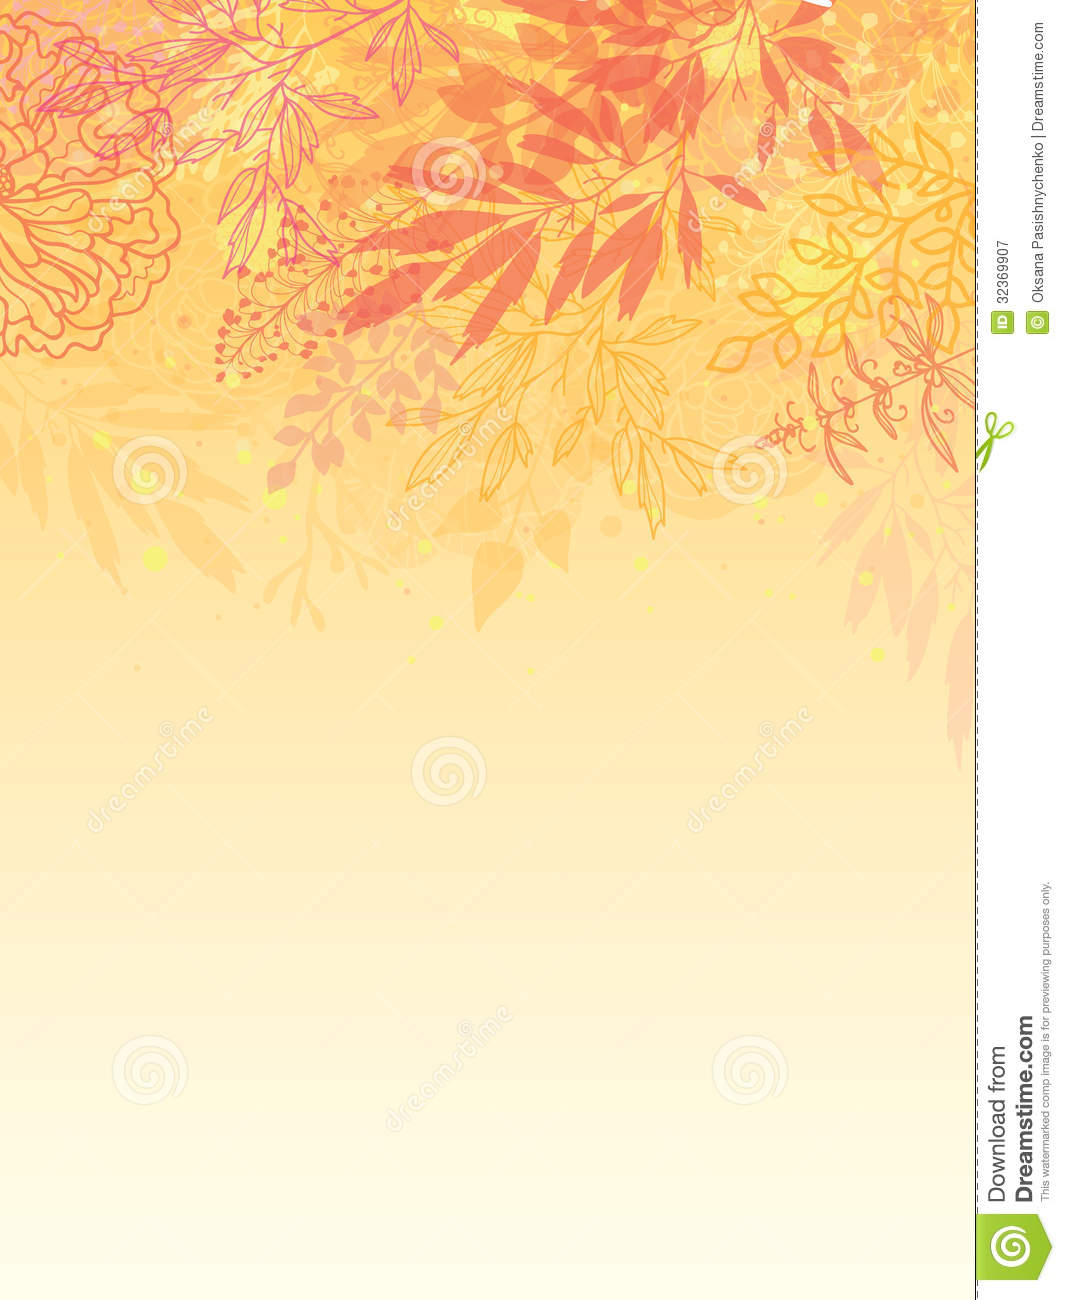 Glowing Fall Plants Vertical Background Royalty Free Stock Photography ...